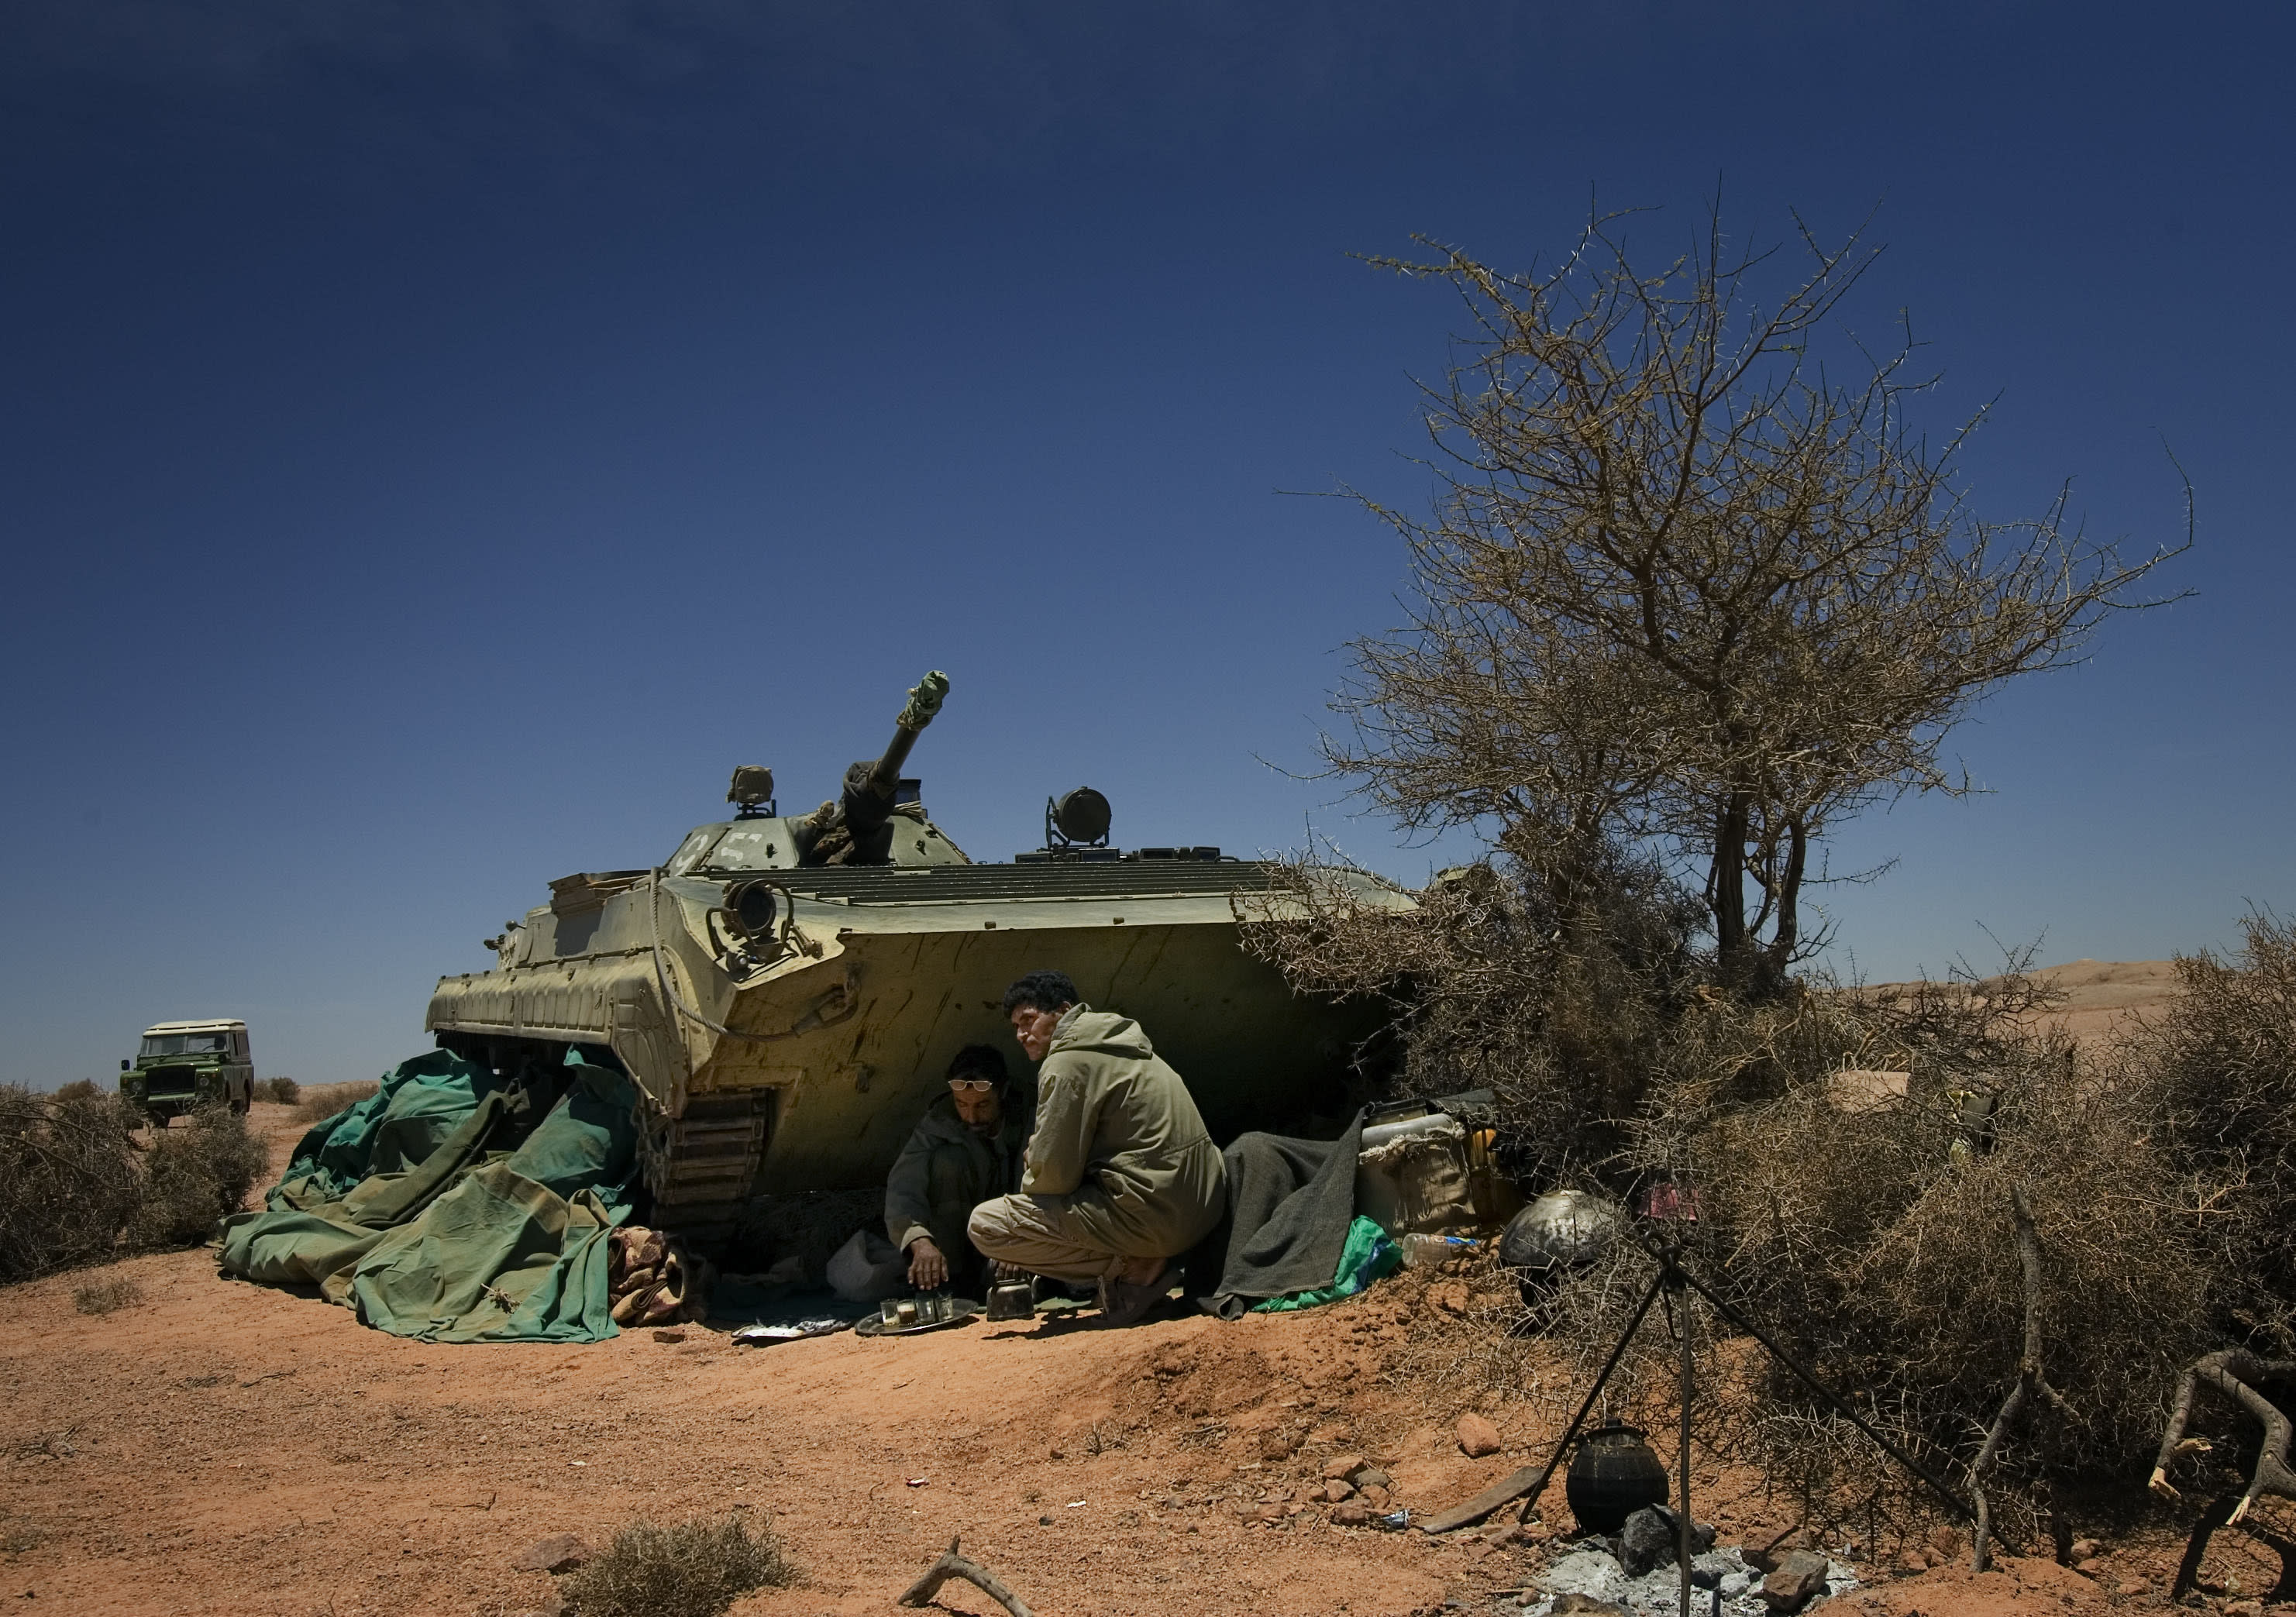 Morocco launches military operation in Western Sahara